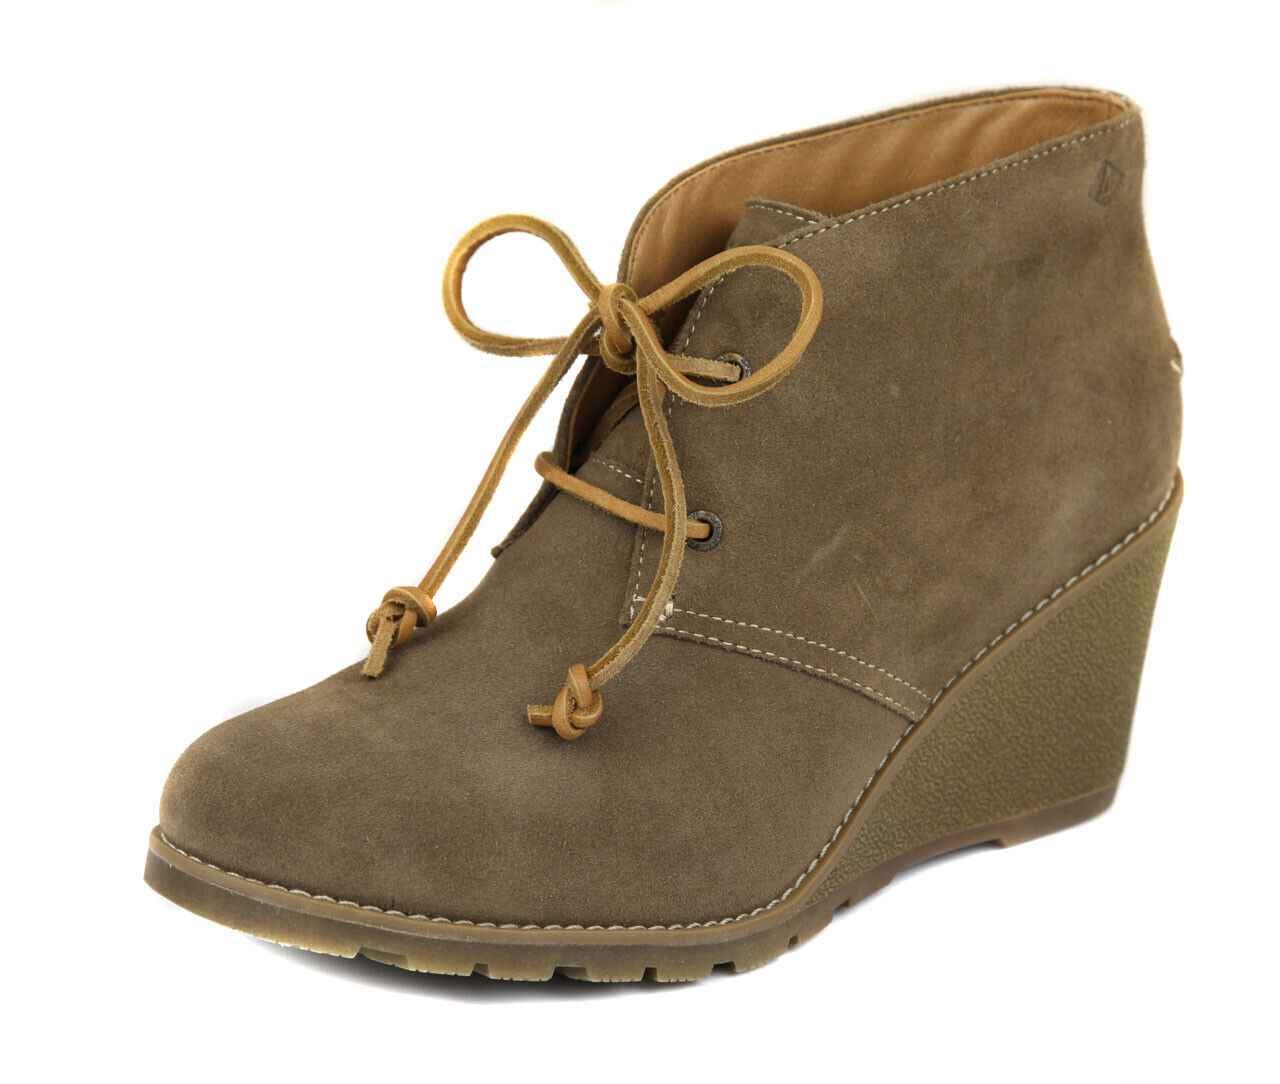 Sperry Women's Taupe Stella Prow Suede Wedge Bootie shoes Ret  New